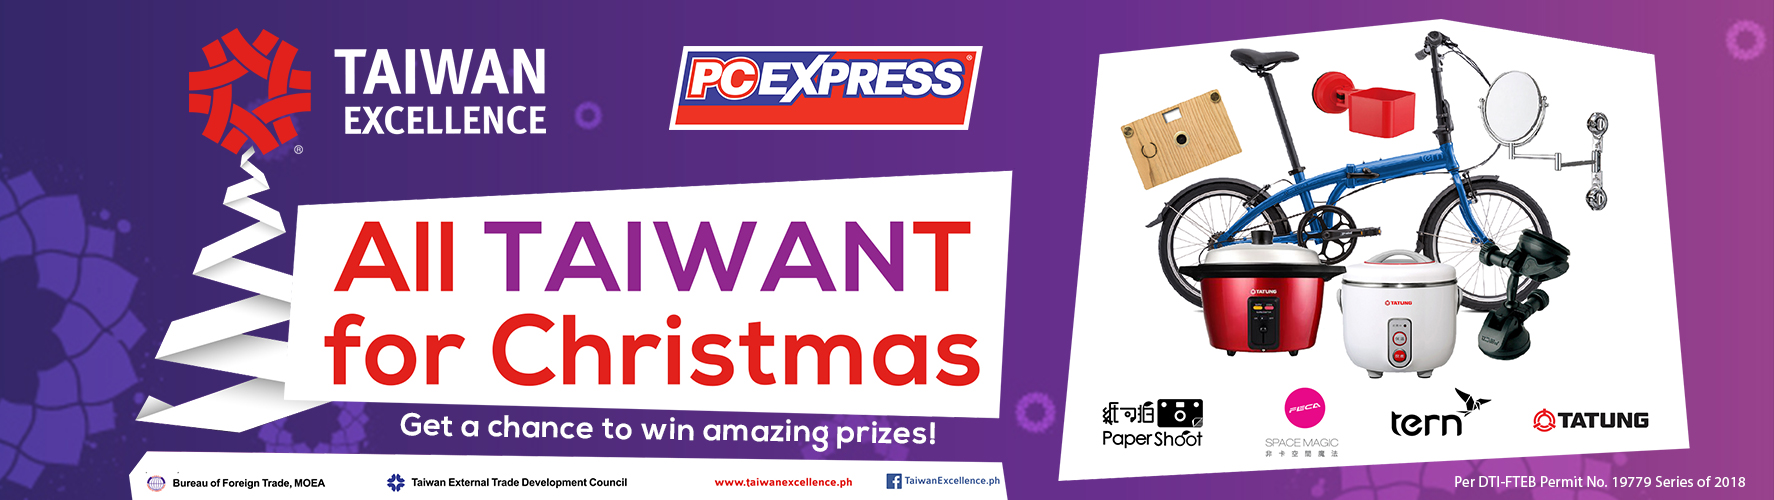 ALL TAIWANt FOR CHRISTMAS RAFFLE PROMO!